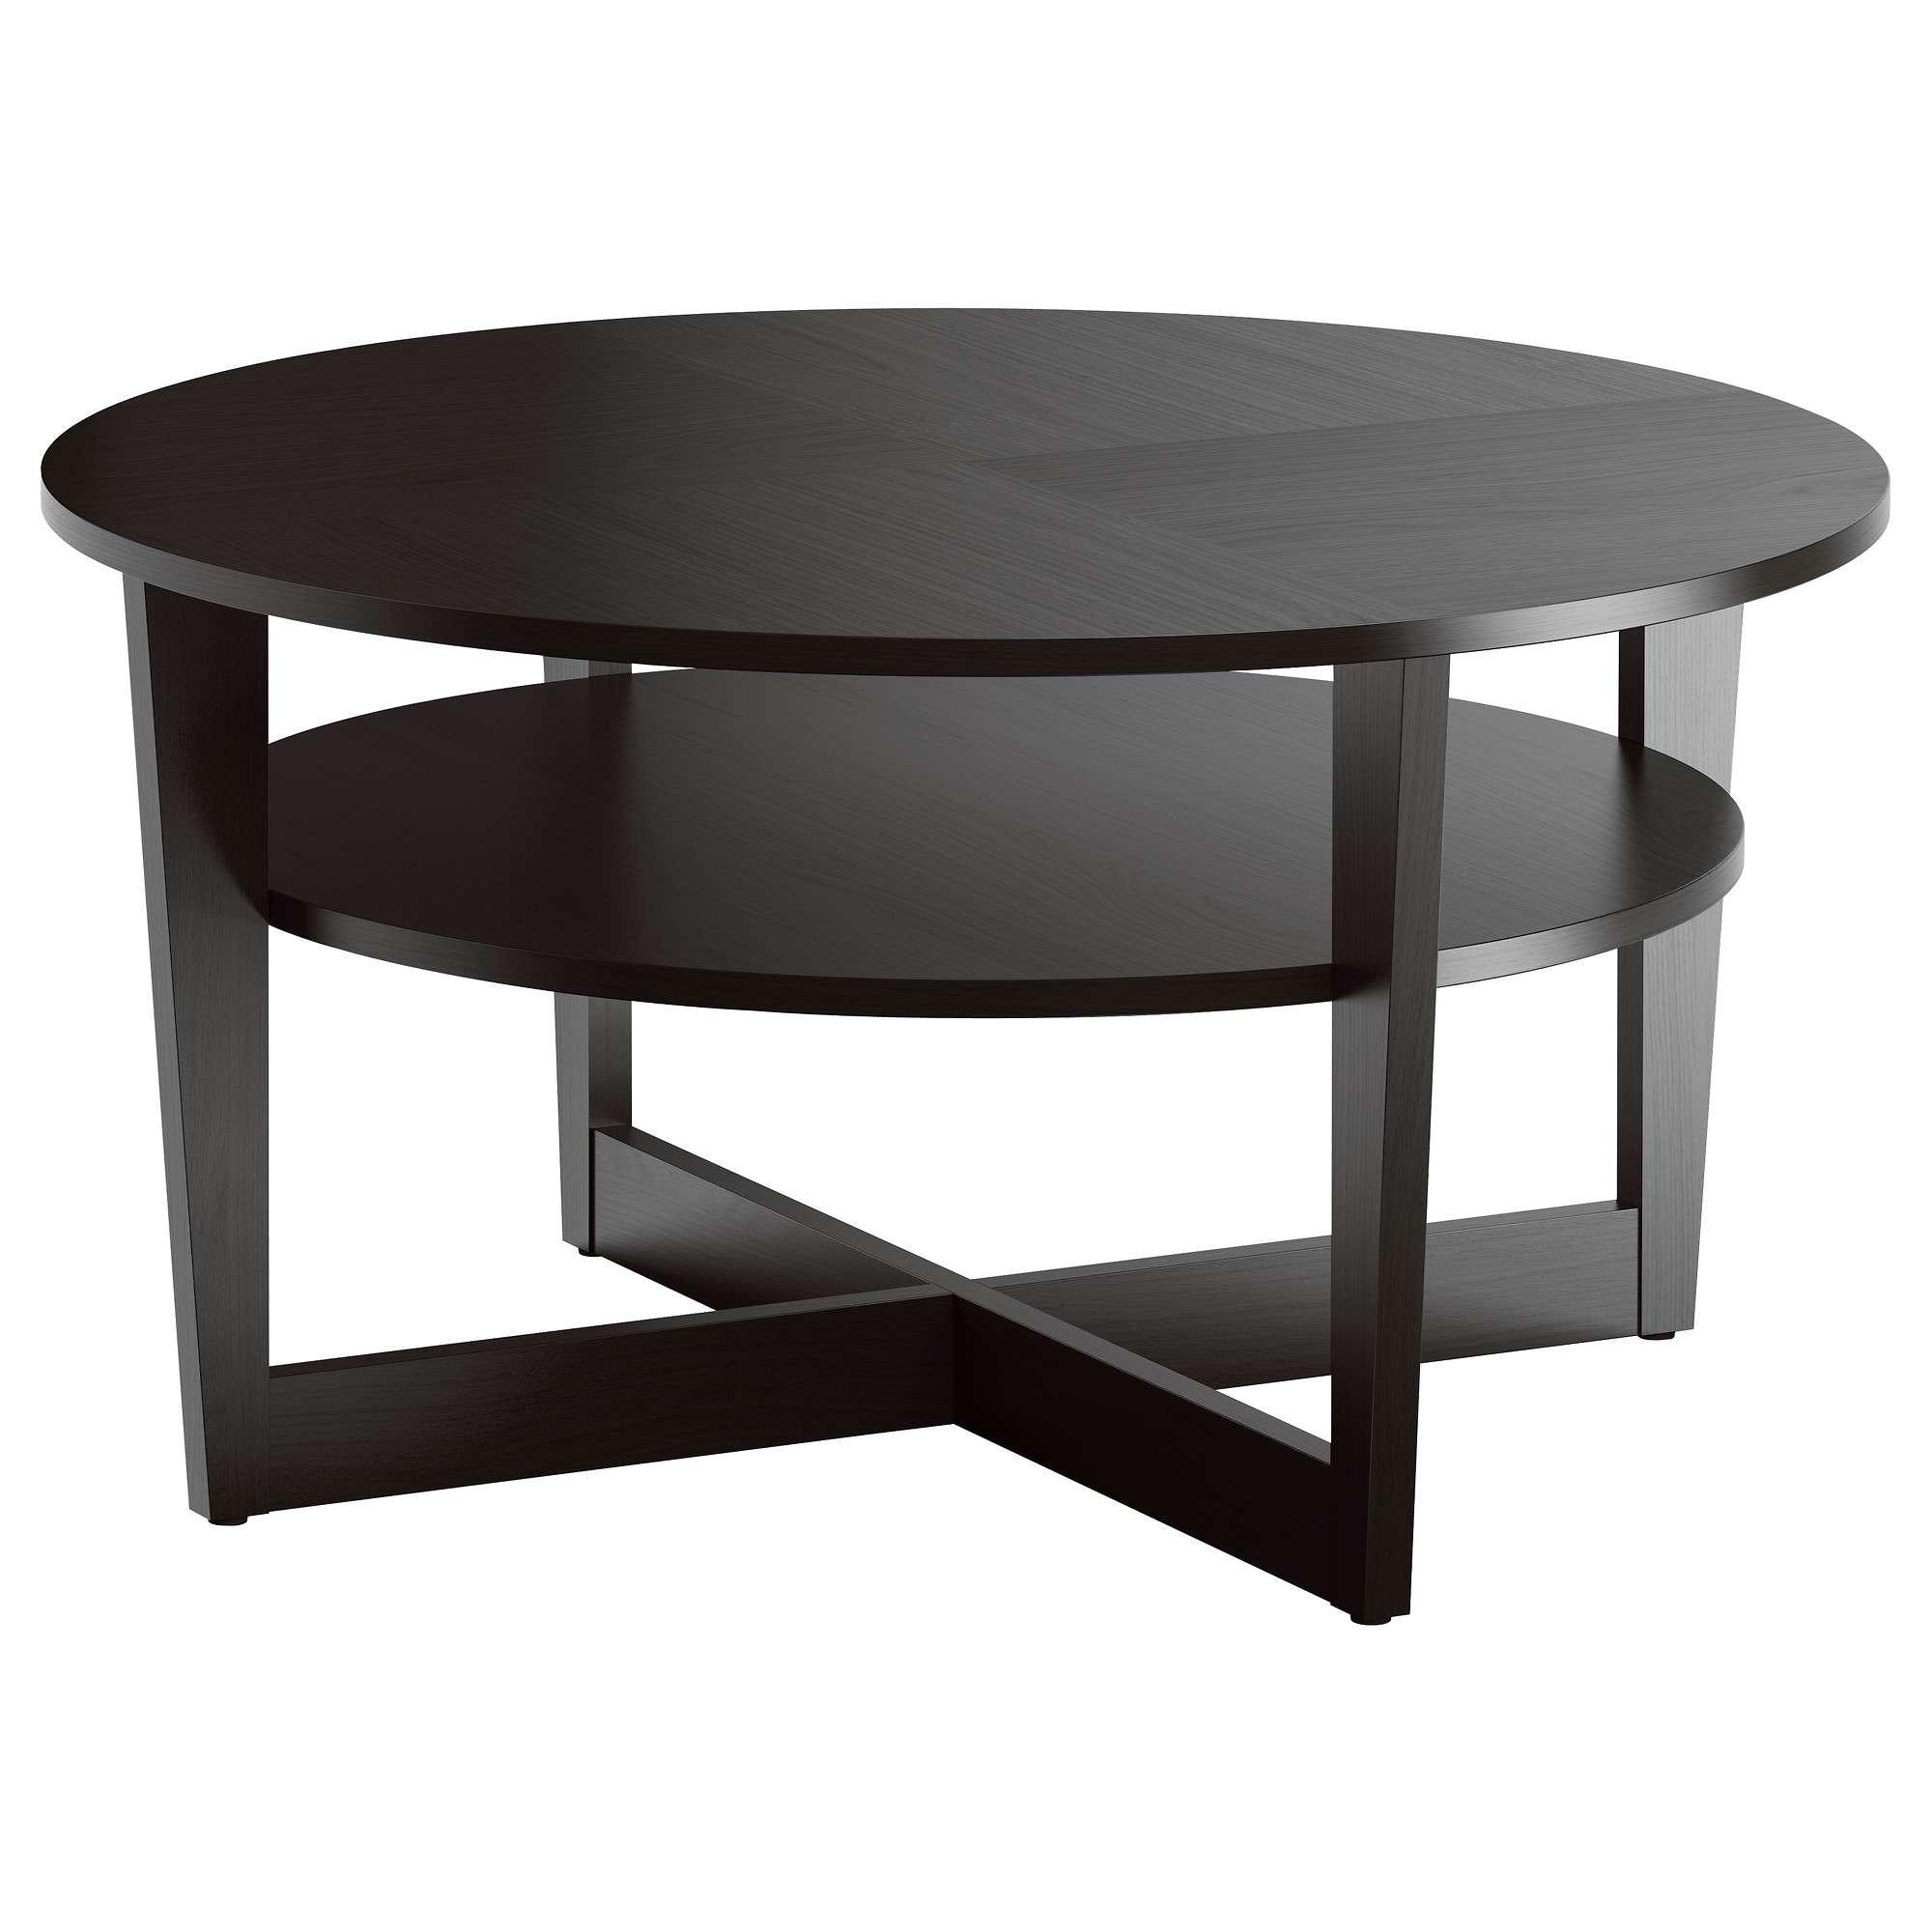 Vejmon Coffee Table – Black Brown – Ikea Intended For Popular White And Black Coffee Tables (View 9 of 20)